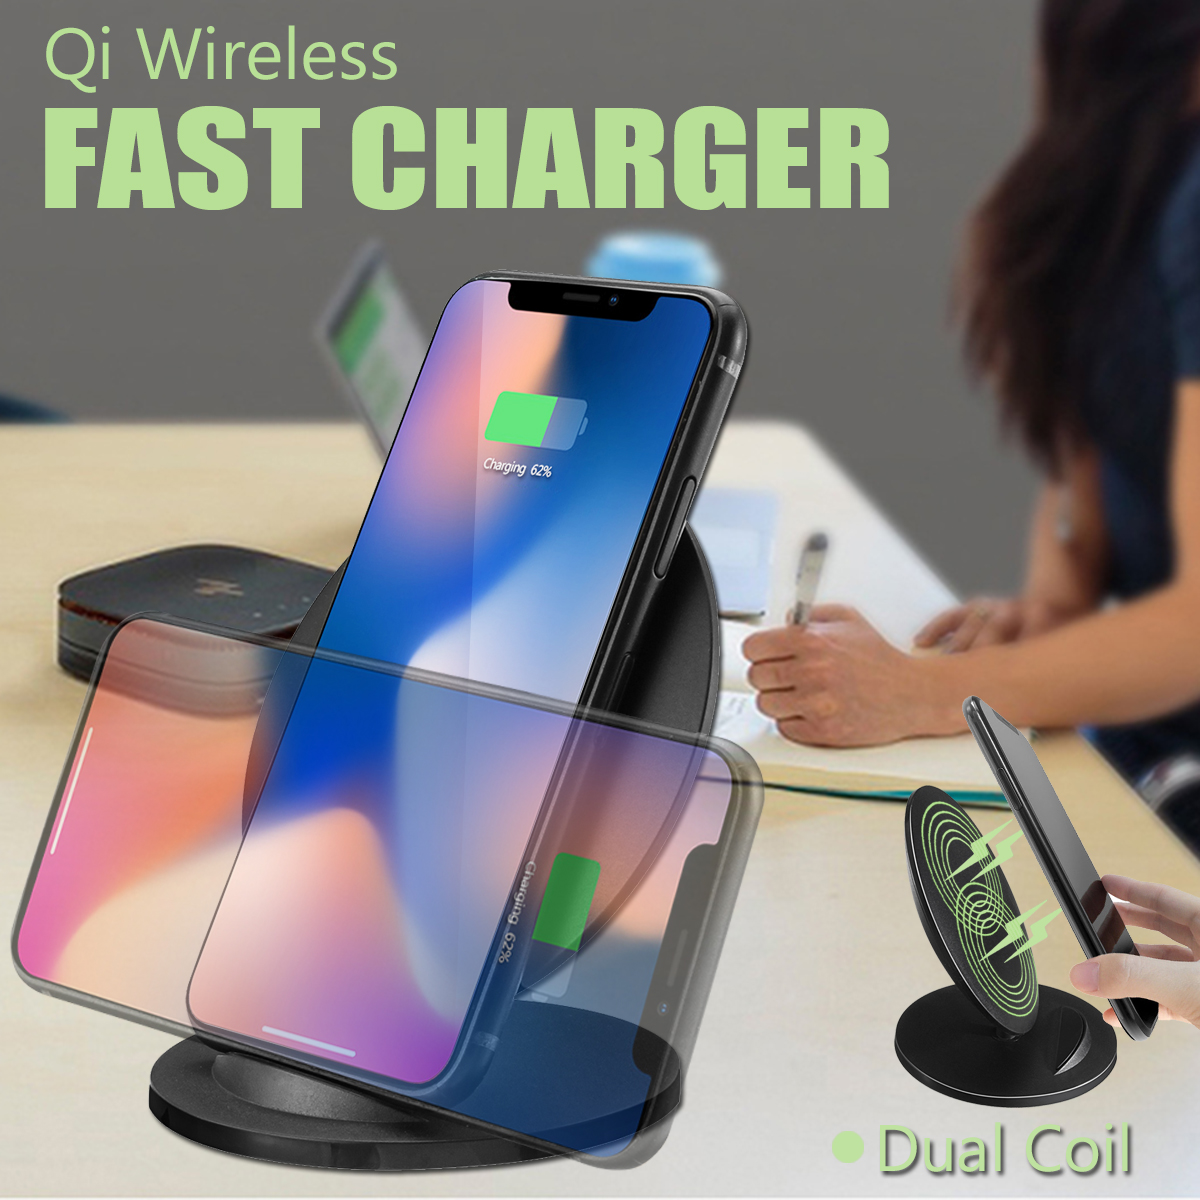 Q8 Black Wireless Qi Fast Charger Dual Coil Phone Charge